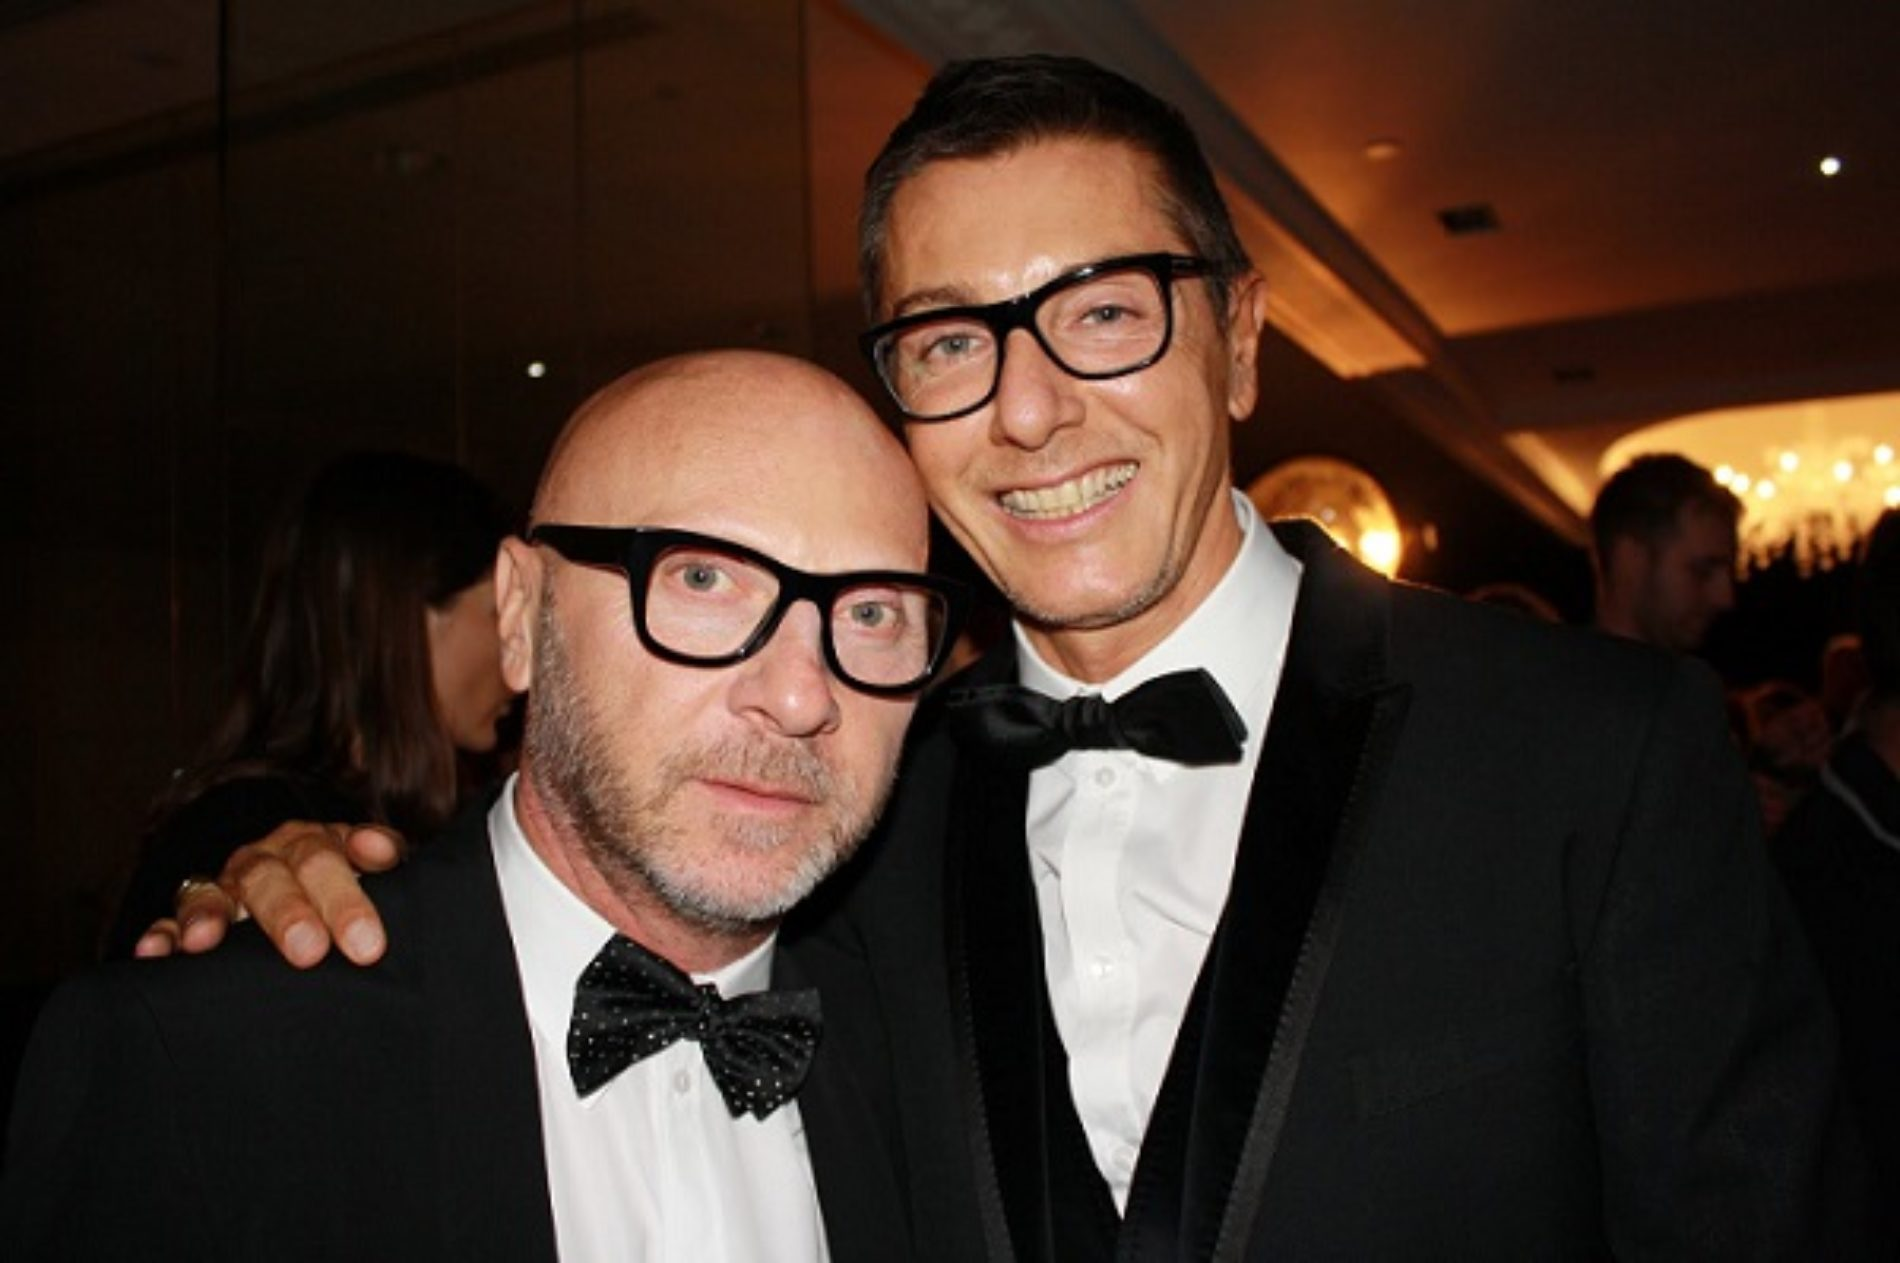 Gabbana once asked his friend to be a surrogate mother, before criticism of 'non-traditional' families